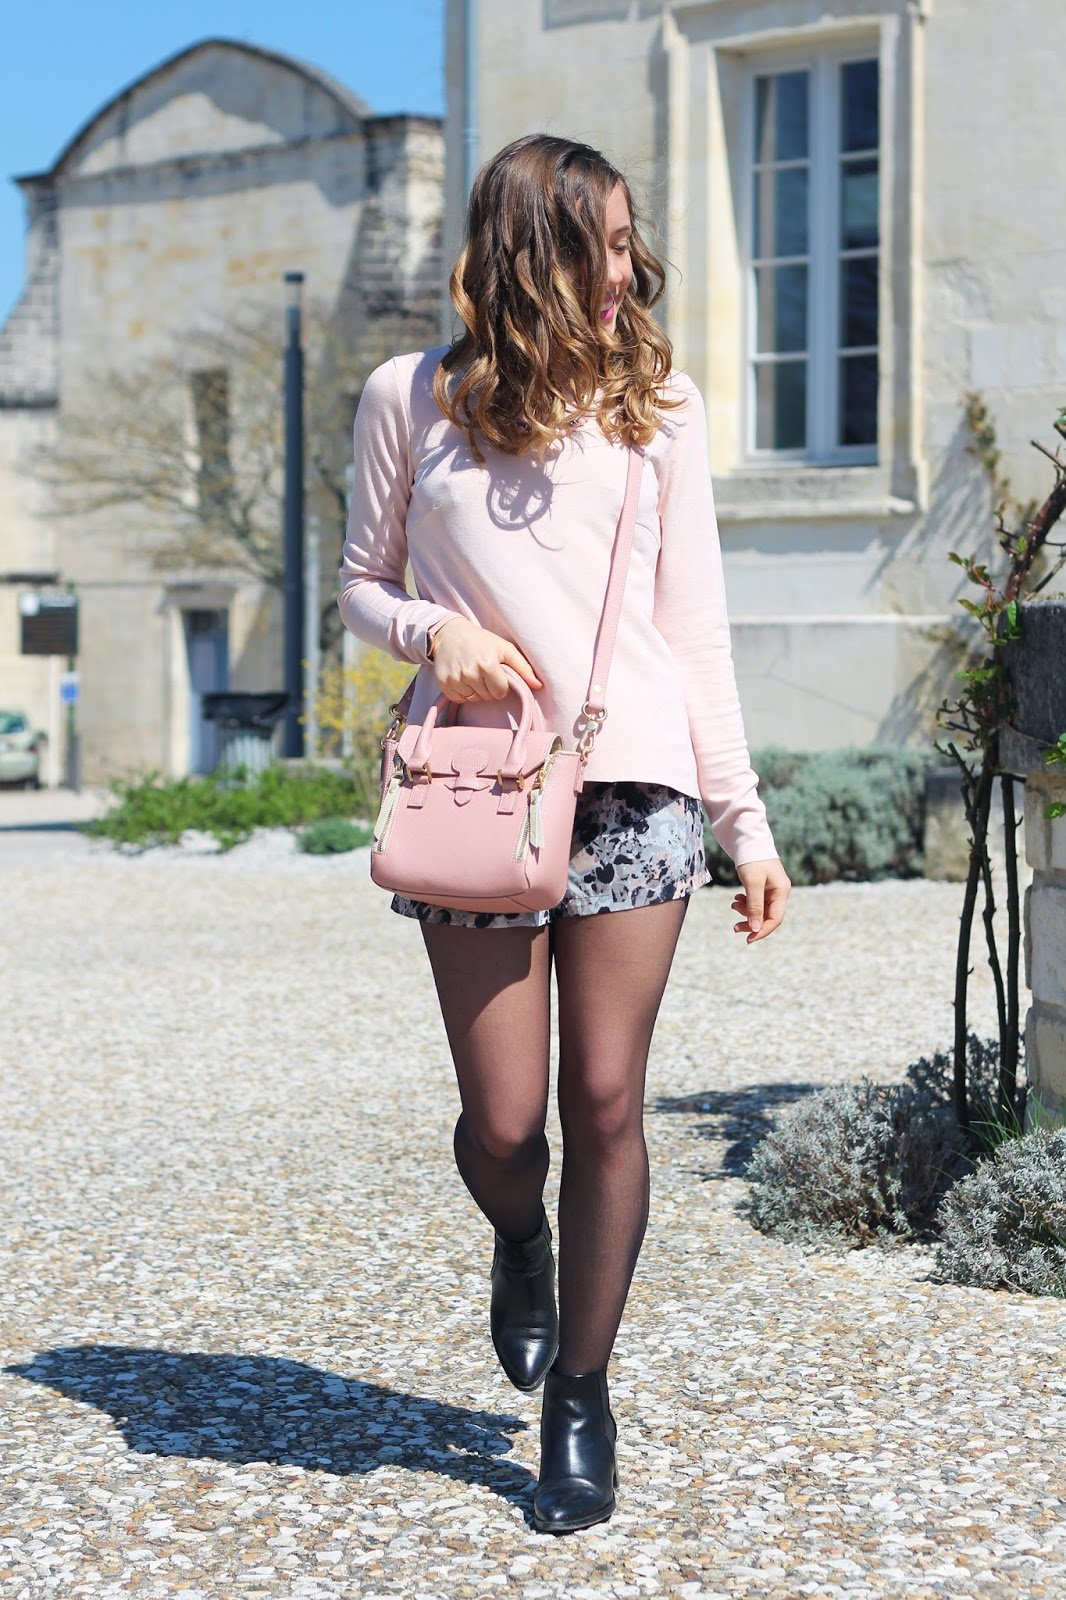 Tenue mode rose pastel printemps